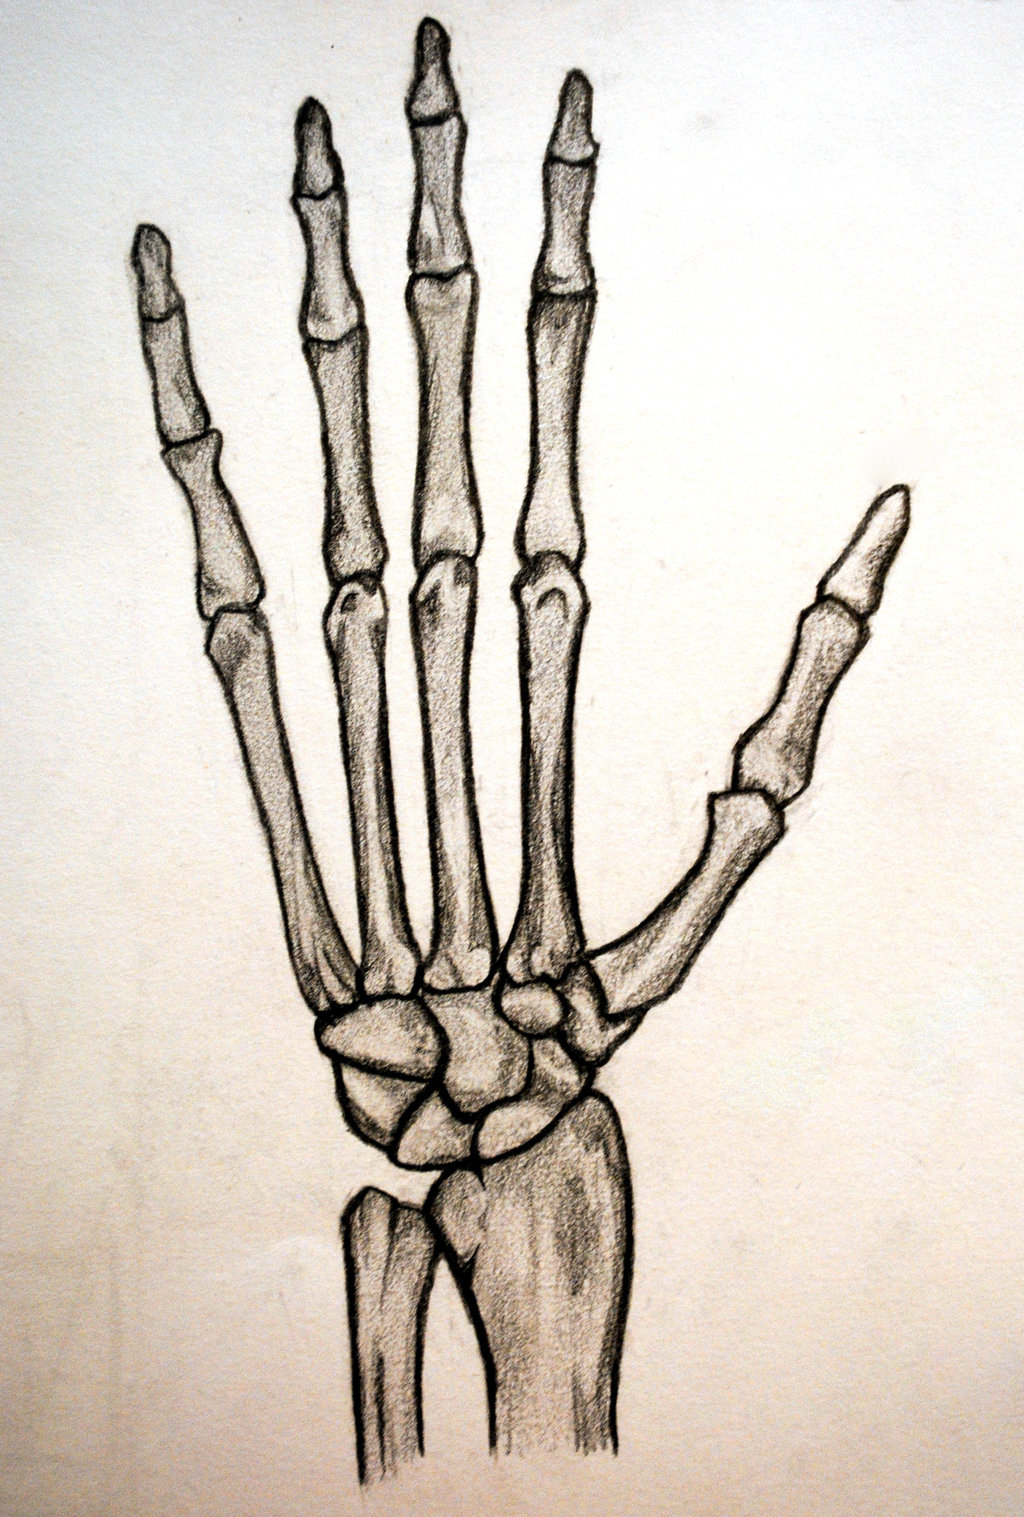 1024x1517 Skeleton Hands Drawing Drawn Skeleton Hand Tumblr